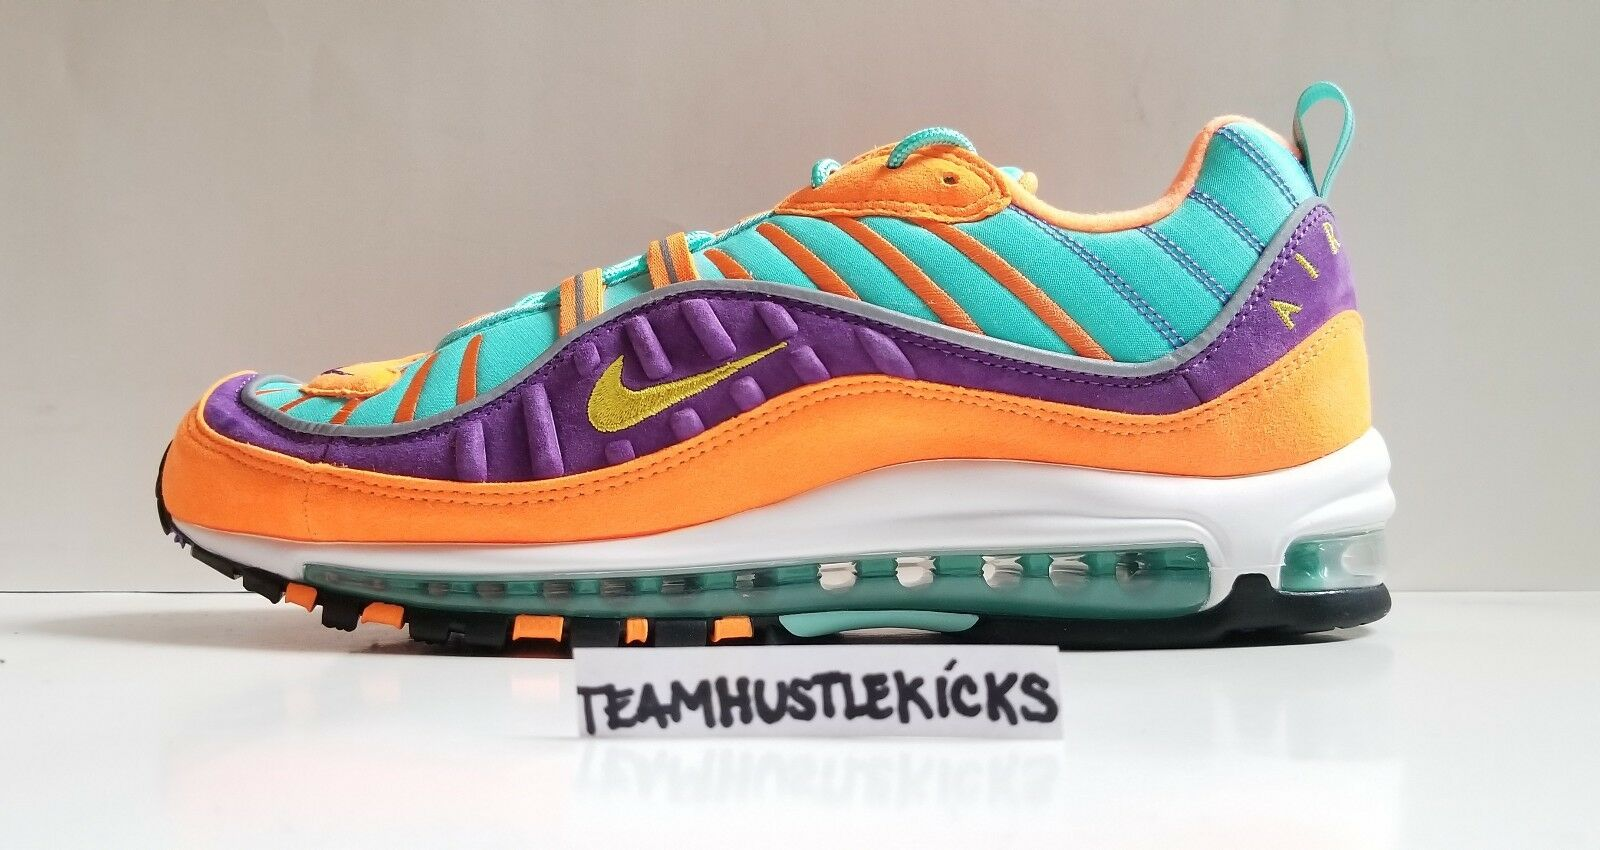 Nike Air Max 98 Cone & Tour Yellow Mens size 11.5 Brand New in box 924462-800